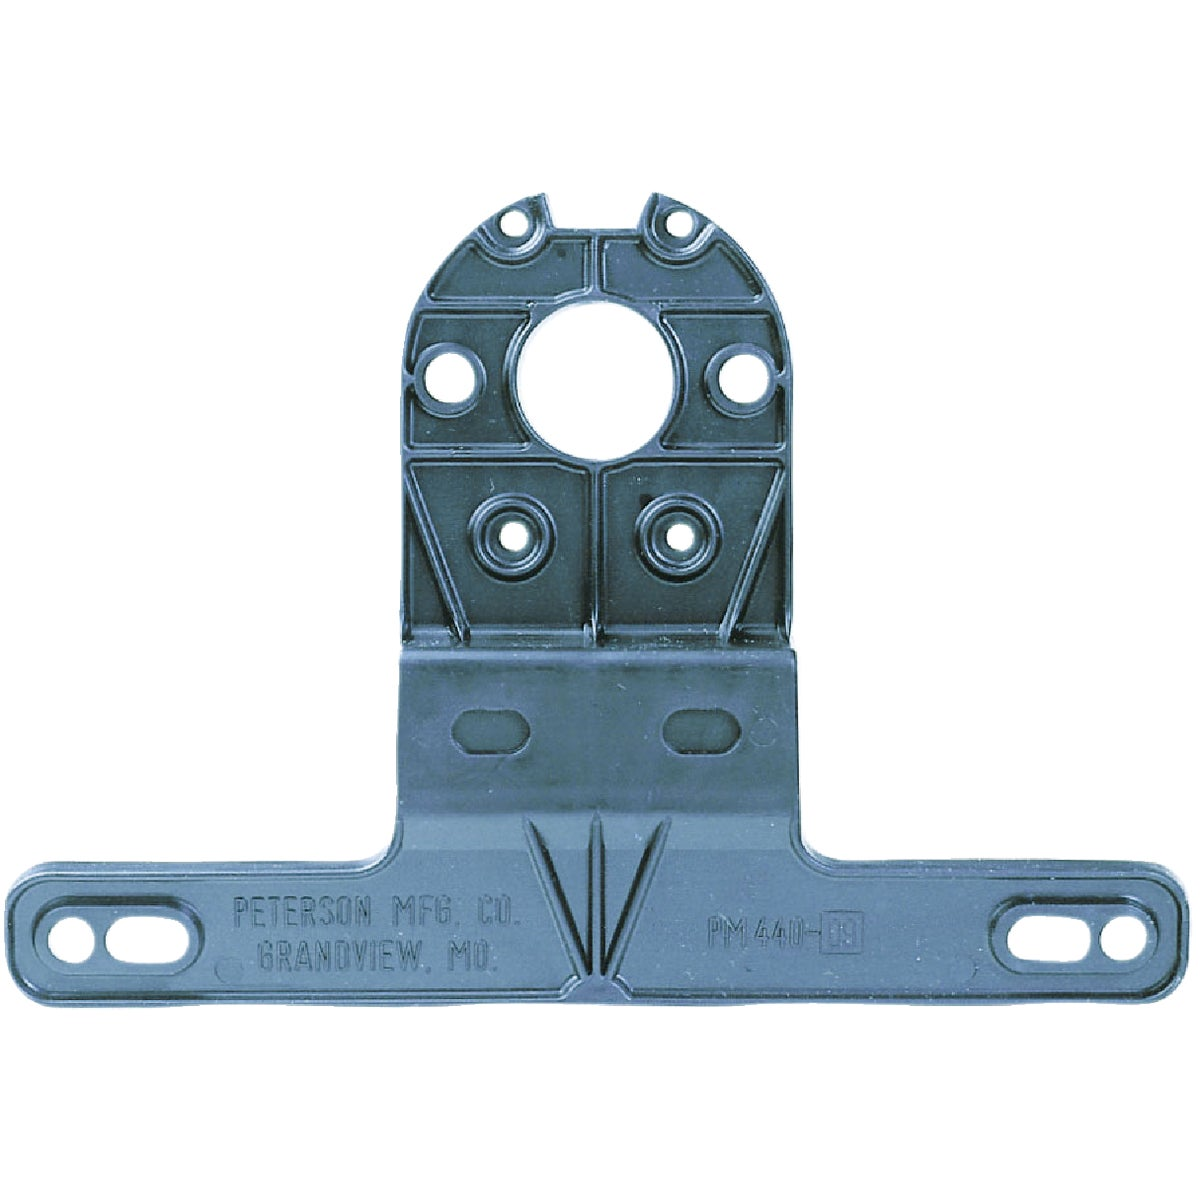 LICENSE BRACKET - V440-09 by Peterson Mfg Co